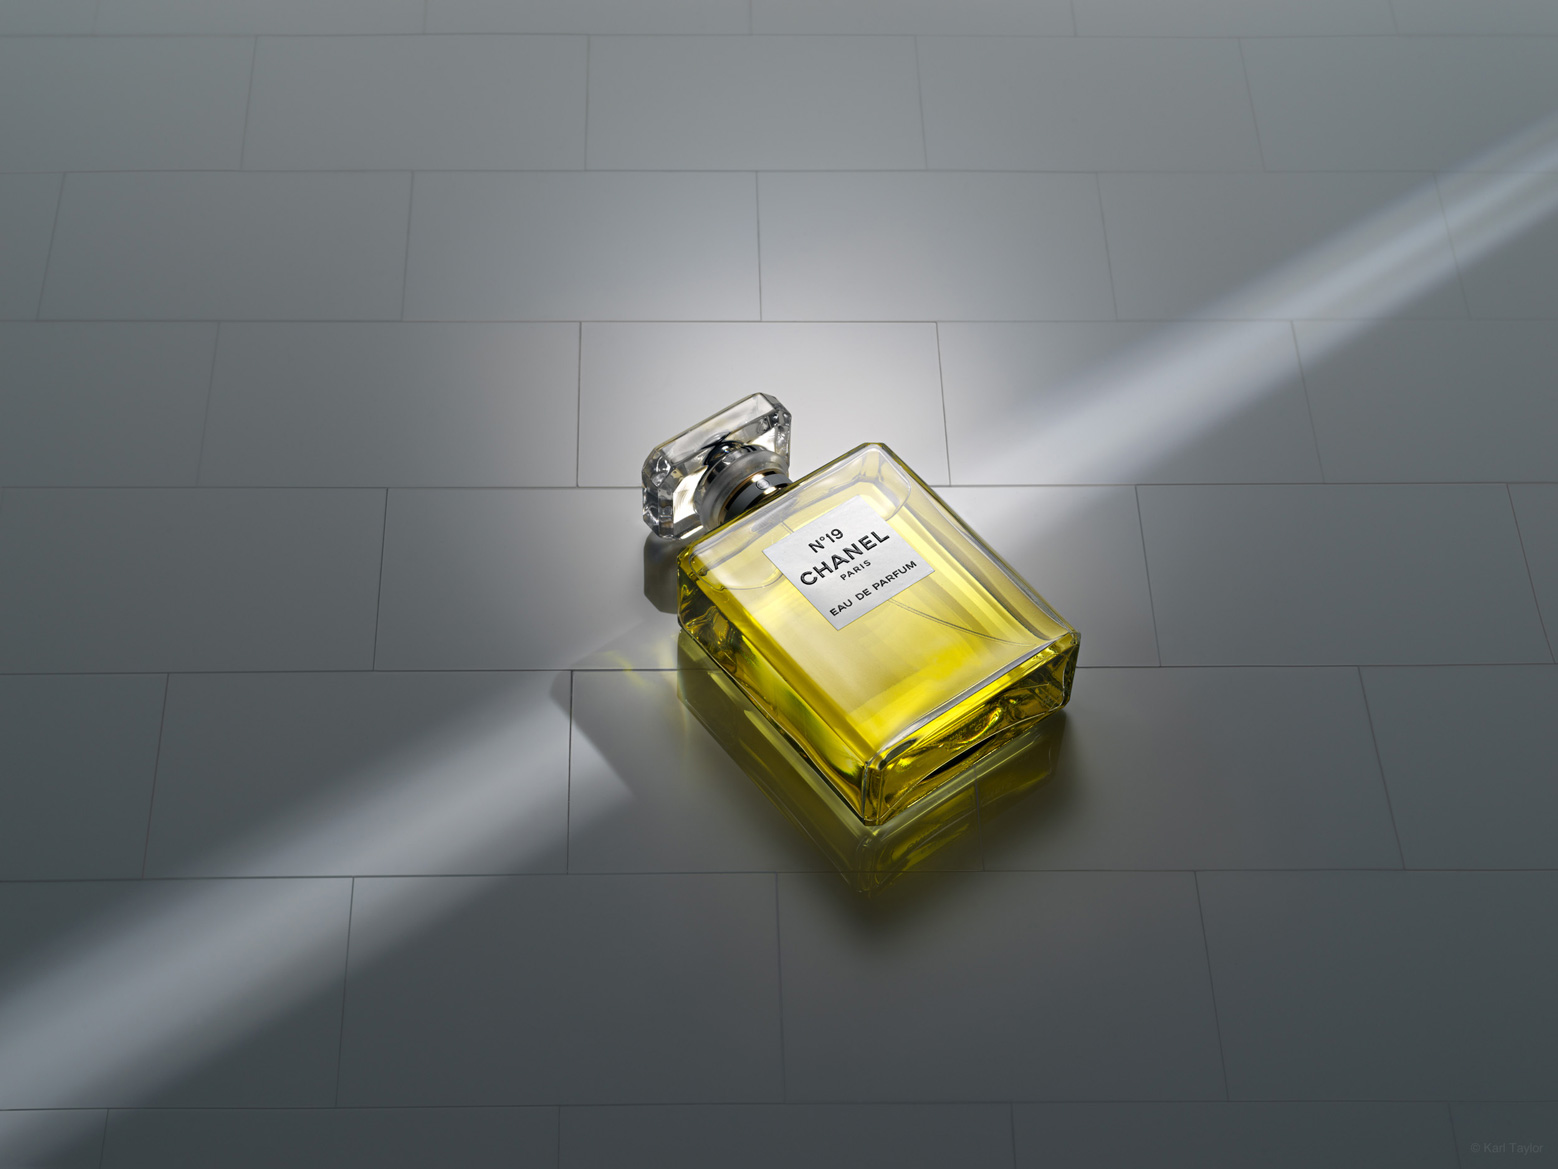 Chanel No.19 perfume bottle in ray of light